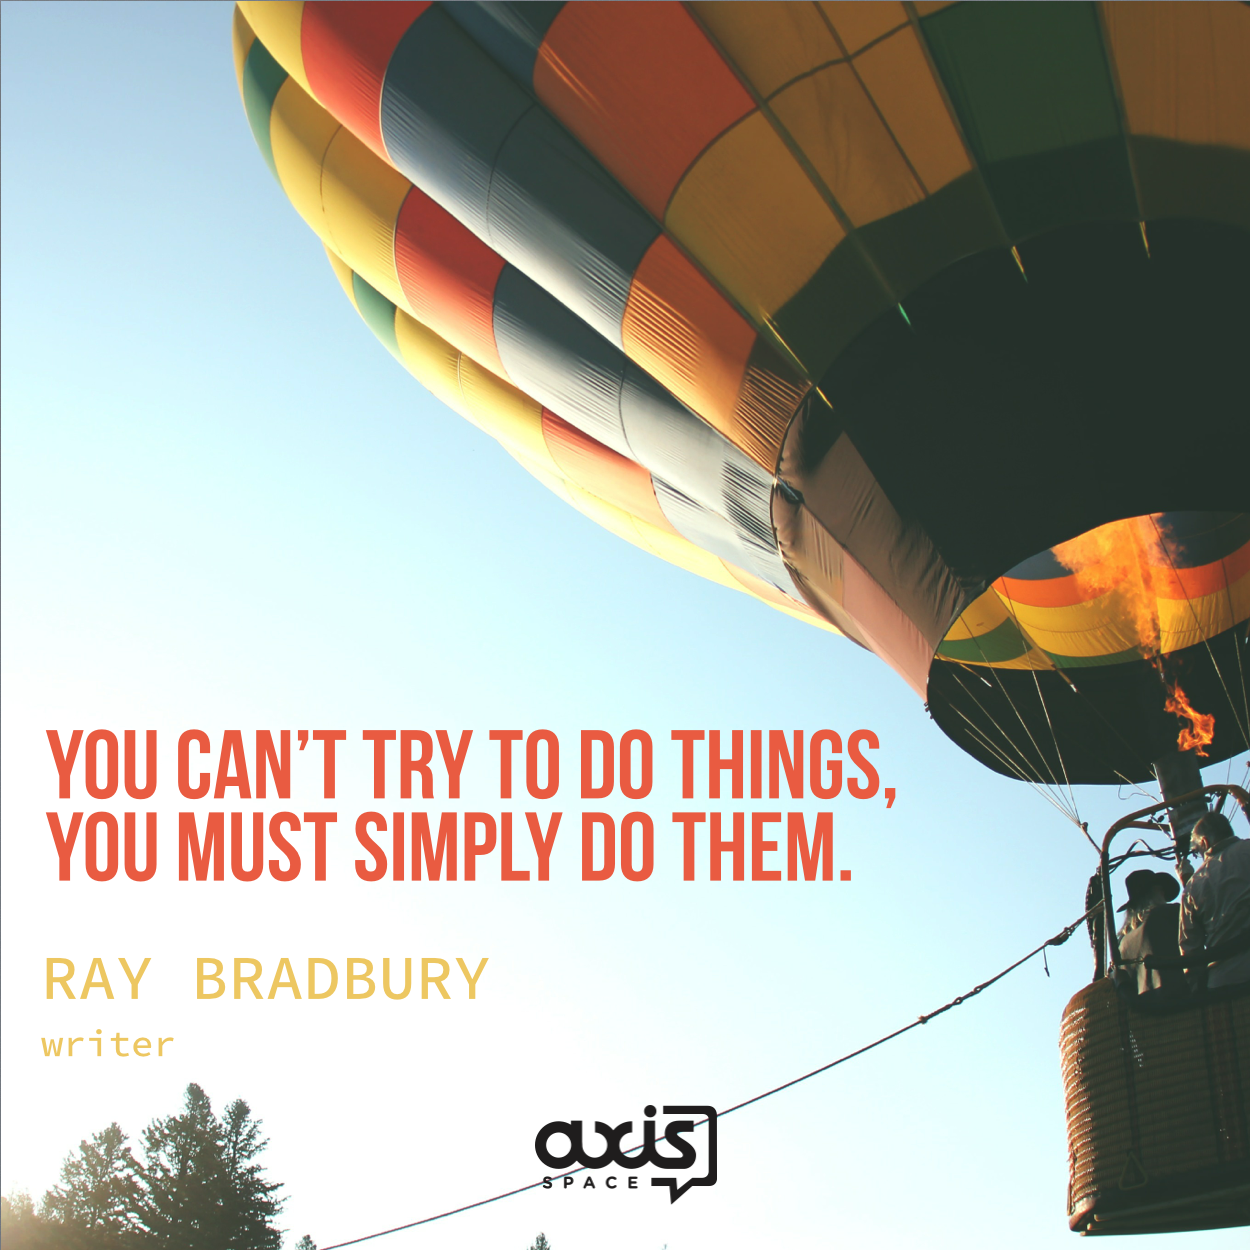 axis-office-space-quote-bradbury